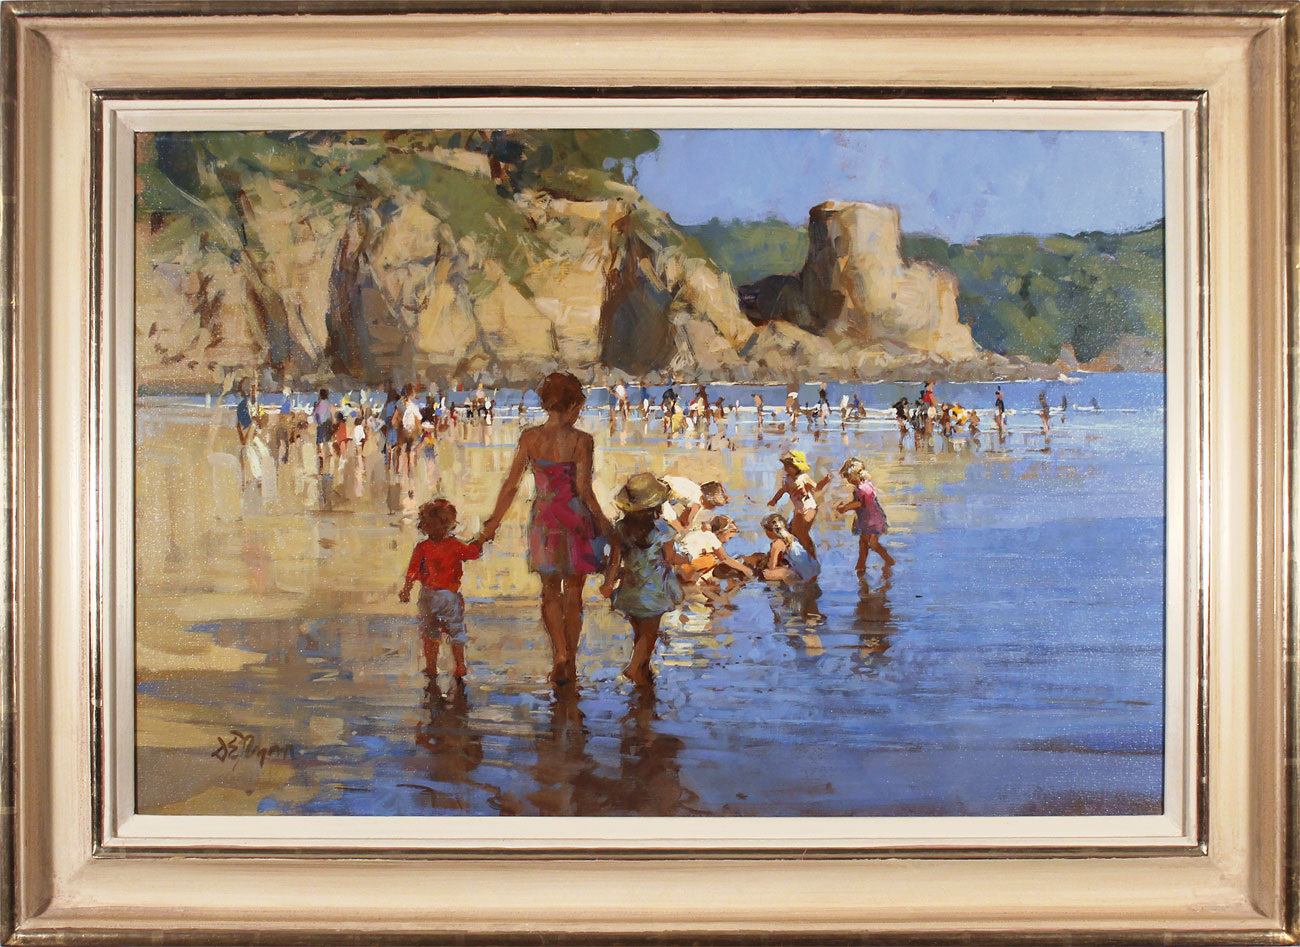 Dianne Flynn, Original acrylic painting on canvas, Salcombe, South Sands, click to enlarge